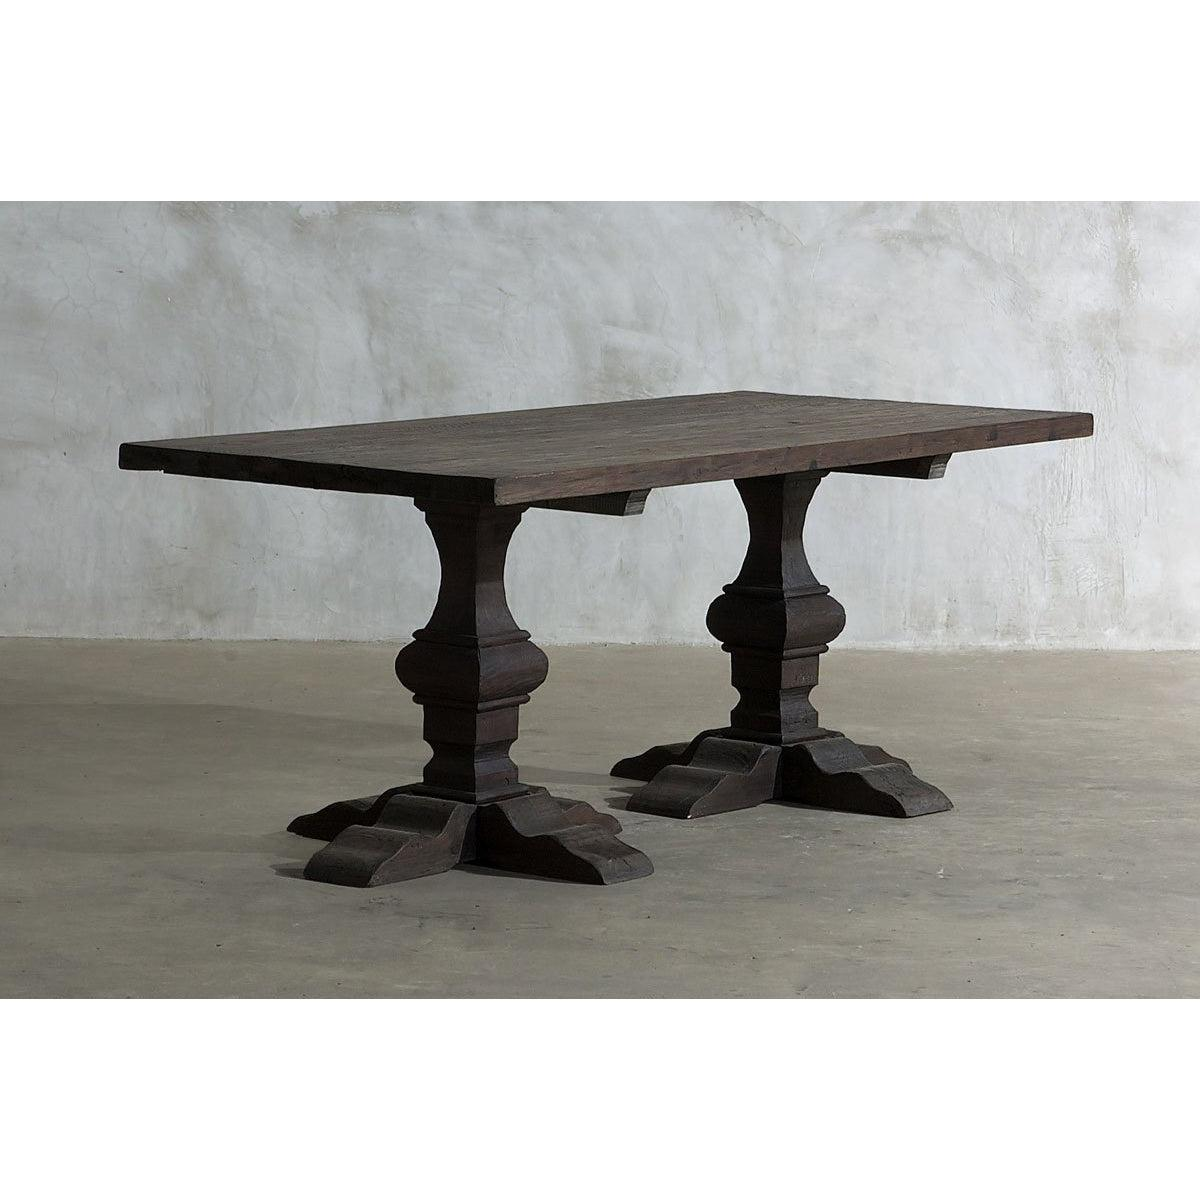 "Reclaimed Elm Dining Table 76"" - Pedestal Legs"